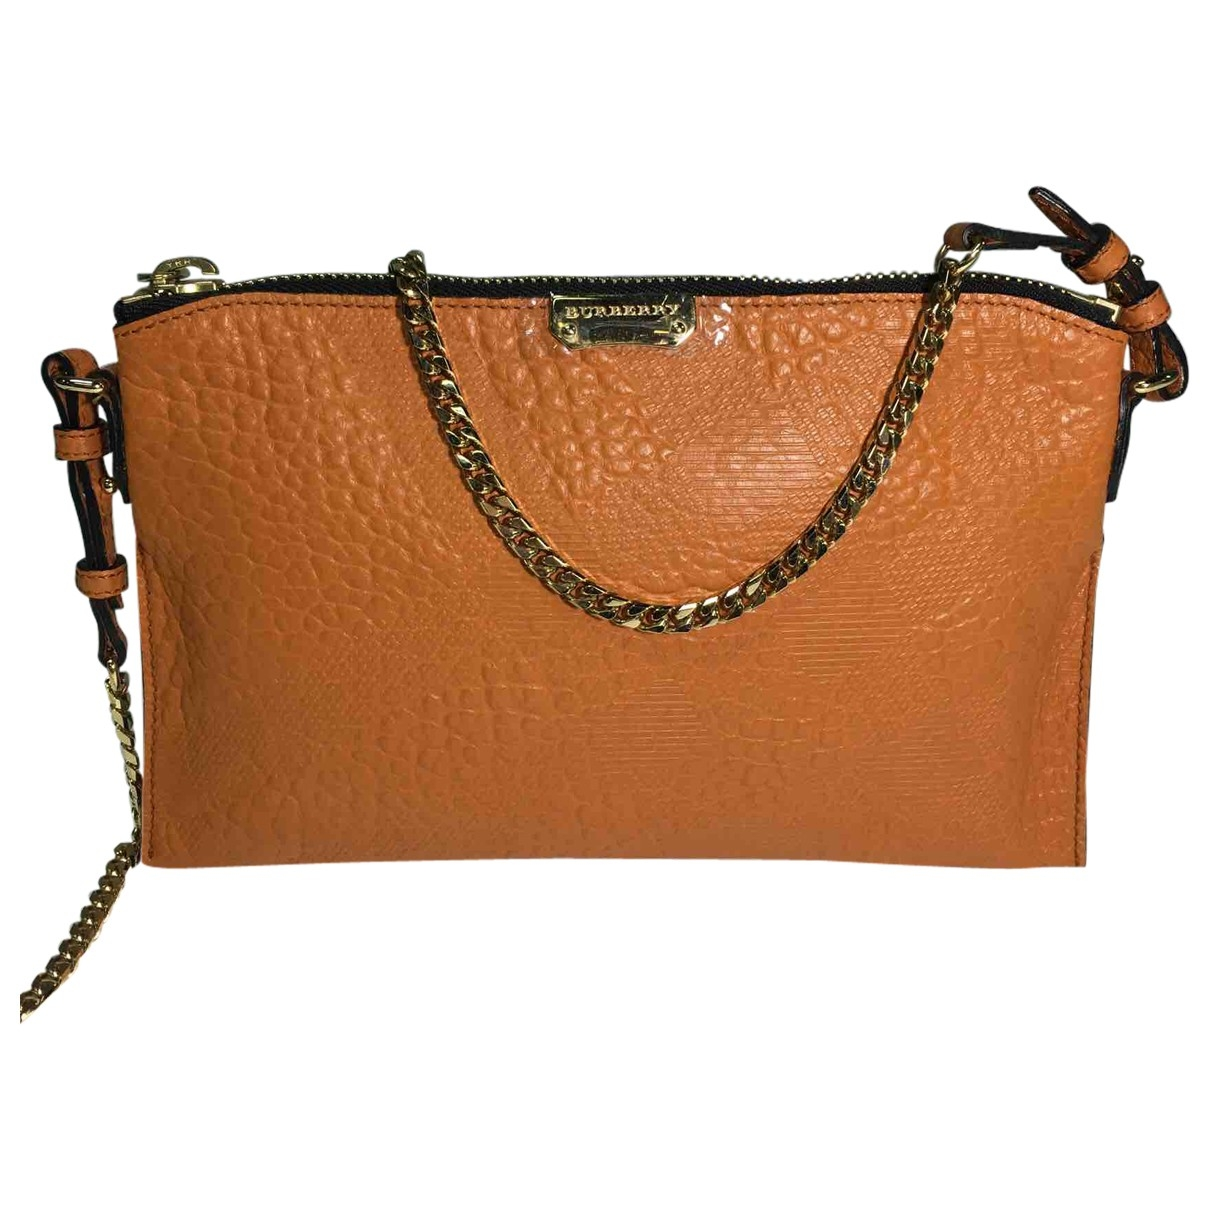 Burberry \N Orange Leather handbag for Women \N